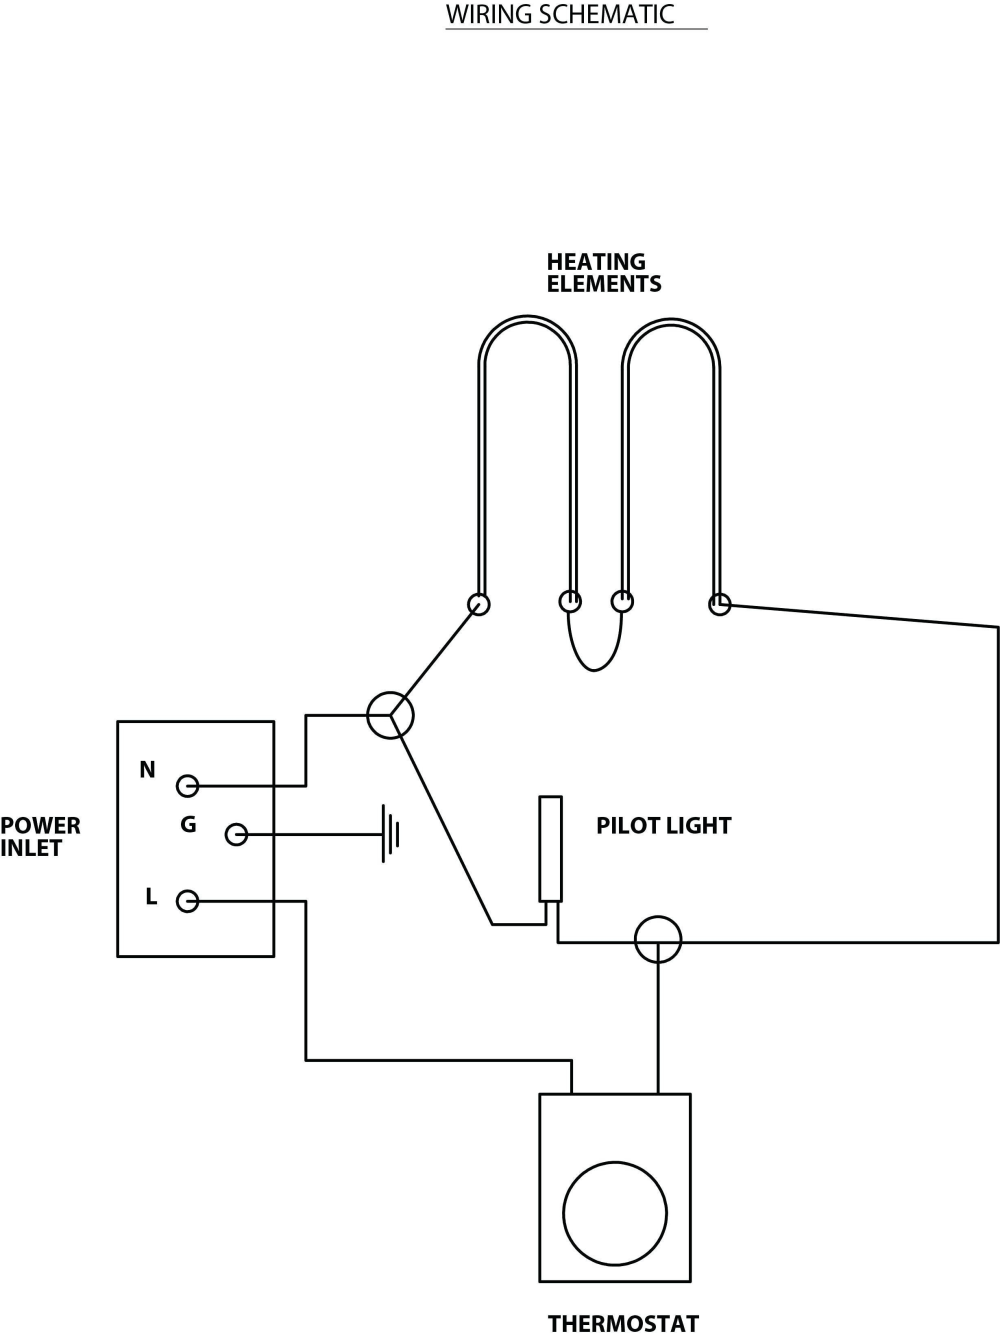 medium resolution of 3 phase oven wiring diagram wiring diagram today 3 pole wire diagram stove